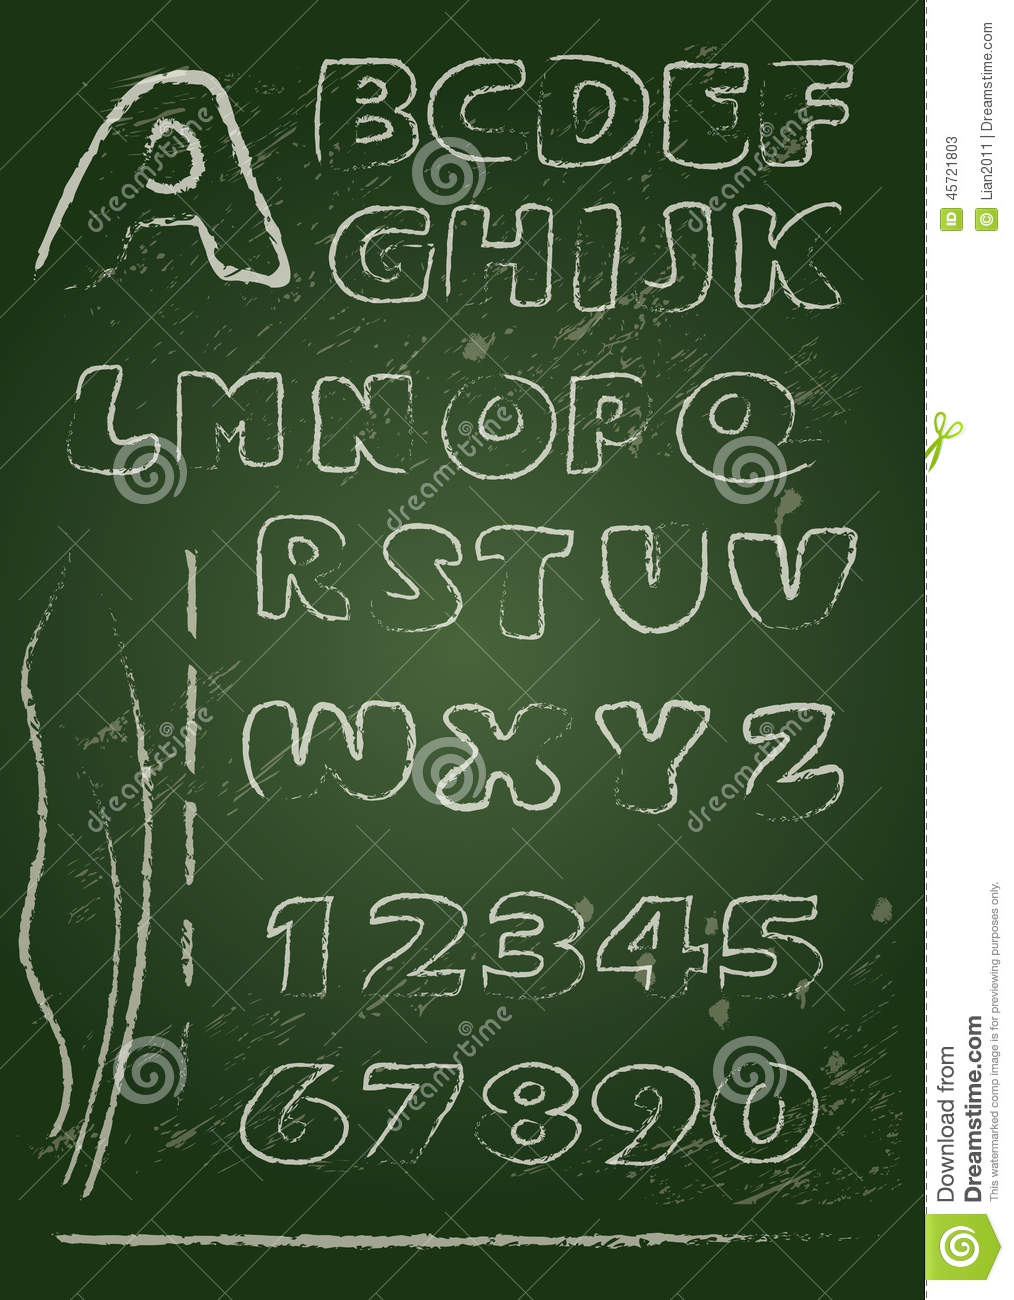 Abc english alphabet written on a blackboard stock image for Blackboard with white removable letters